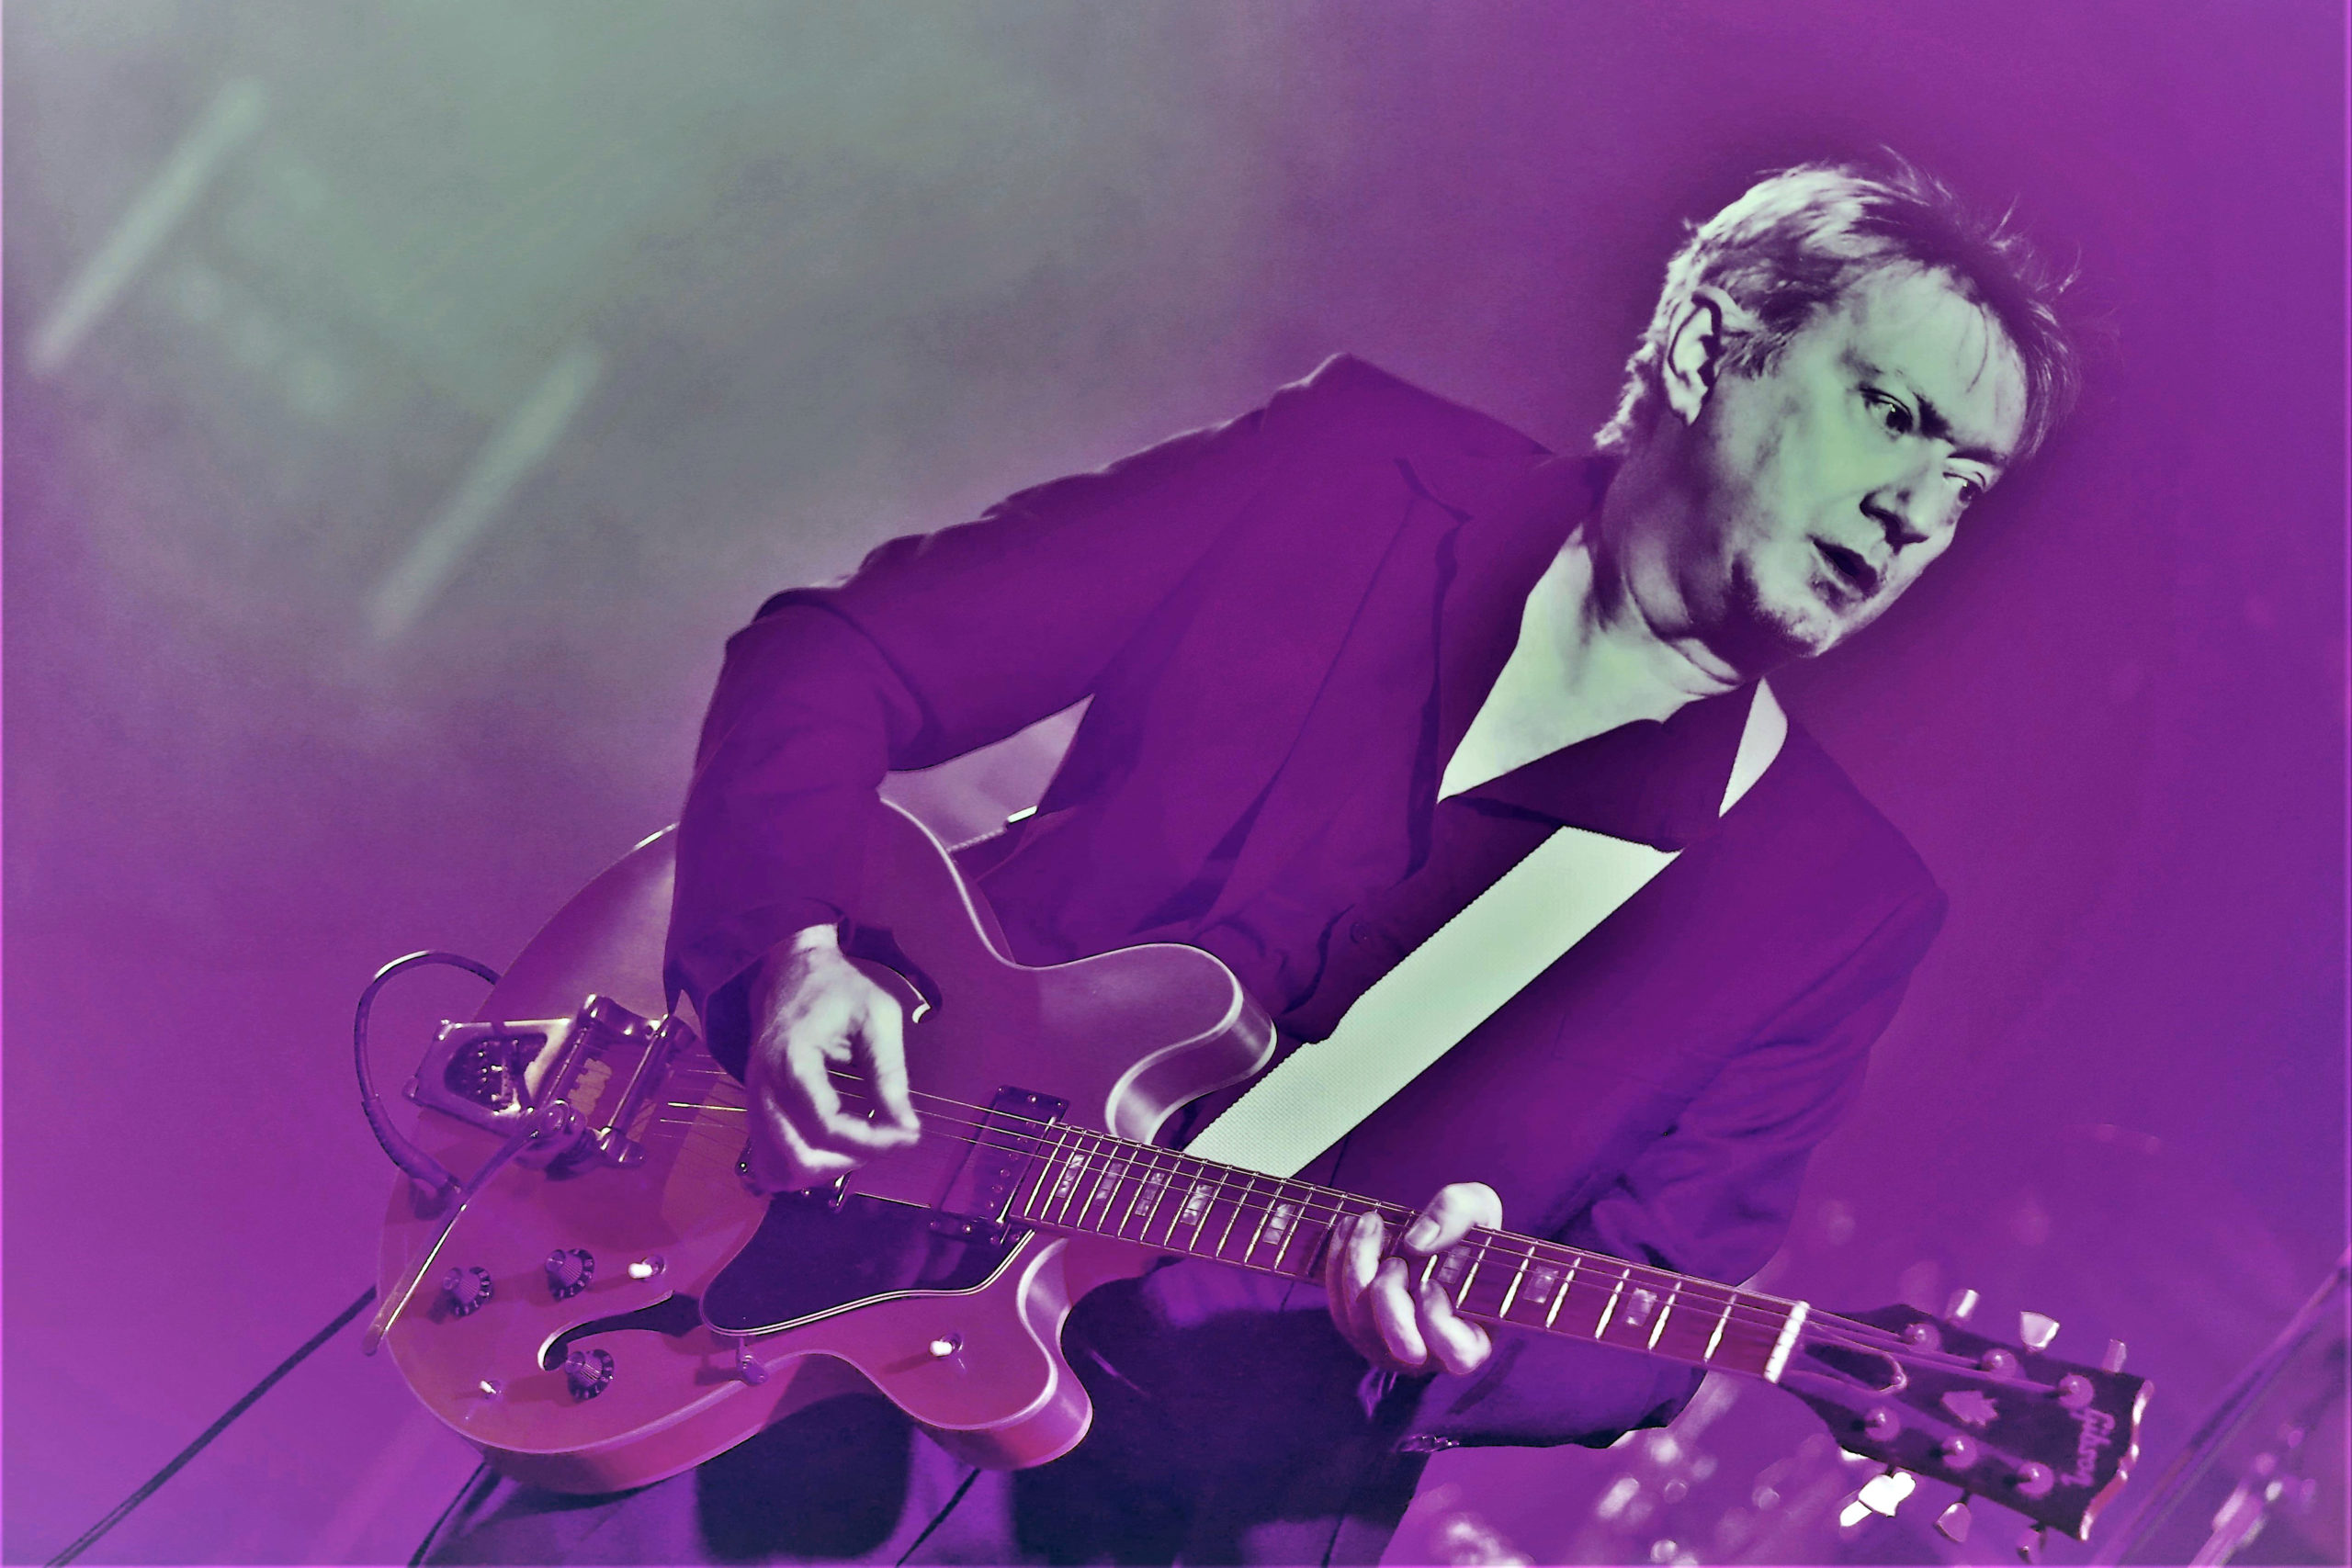 TRIBUTE: Andy Gill (Gang of Four)